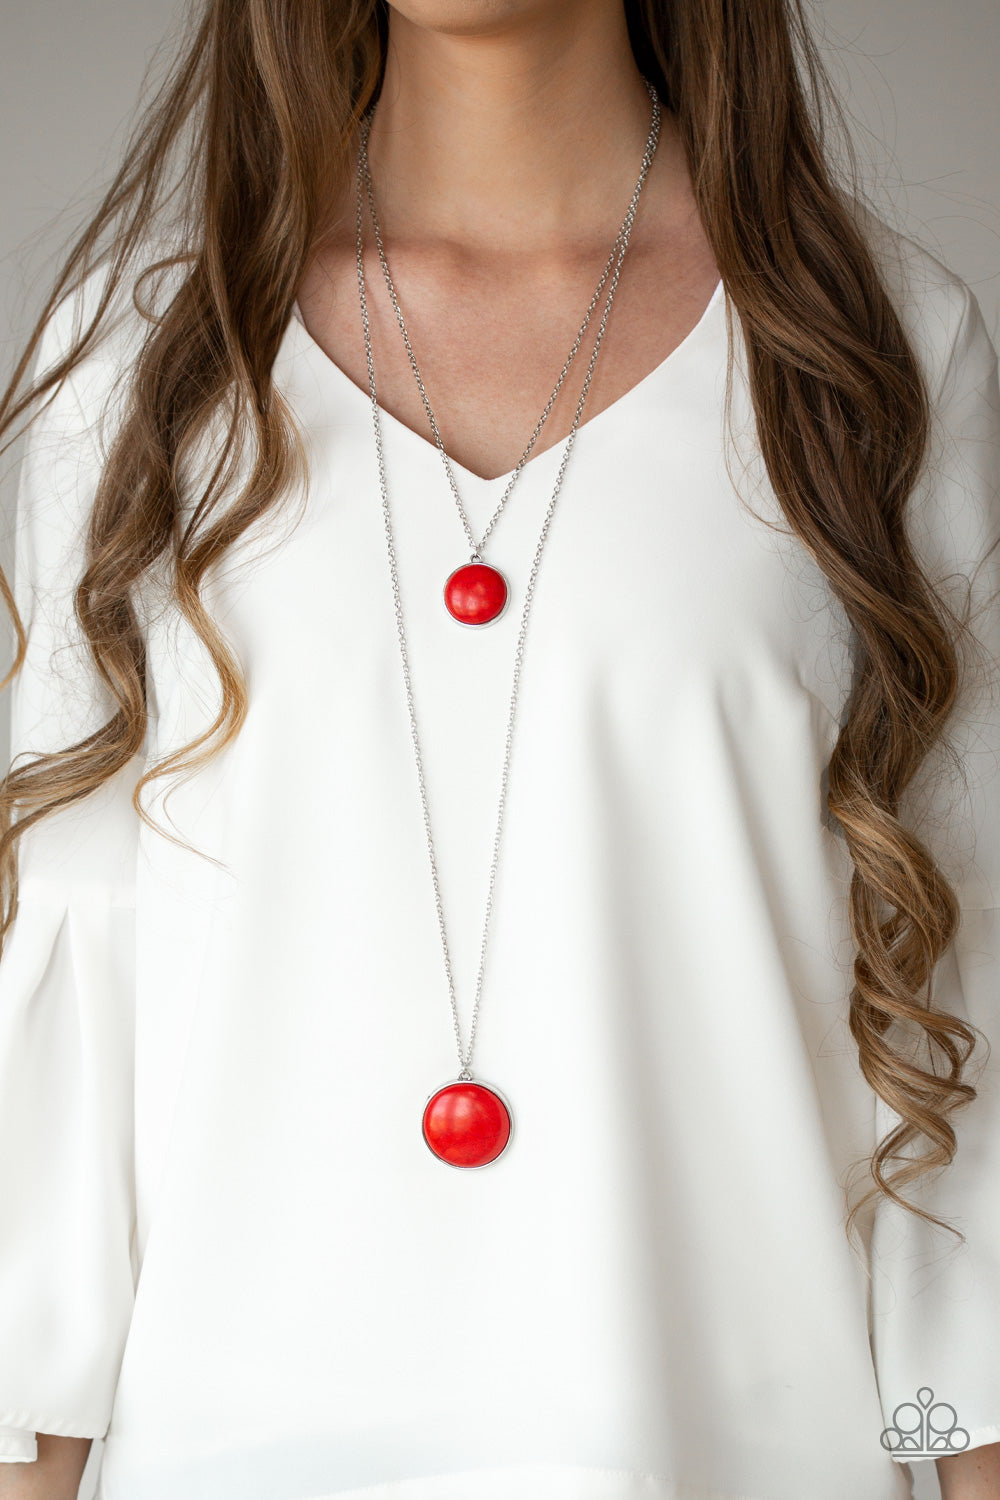 Paparazzi Desert Medallions Red Necklace & Earrings Set